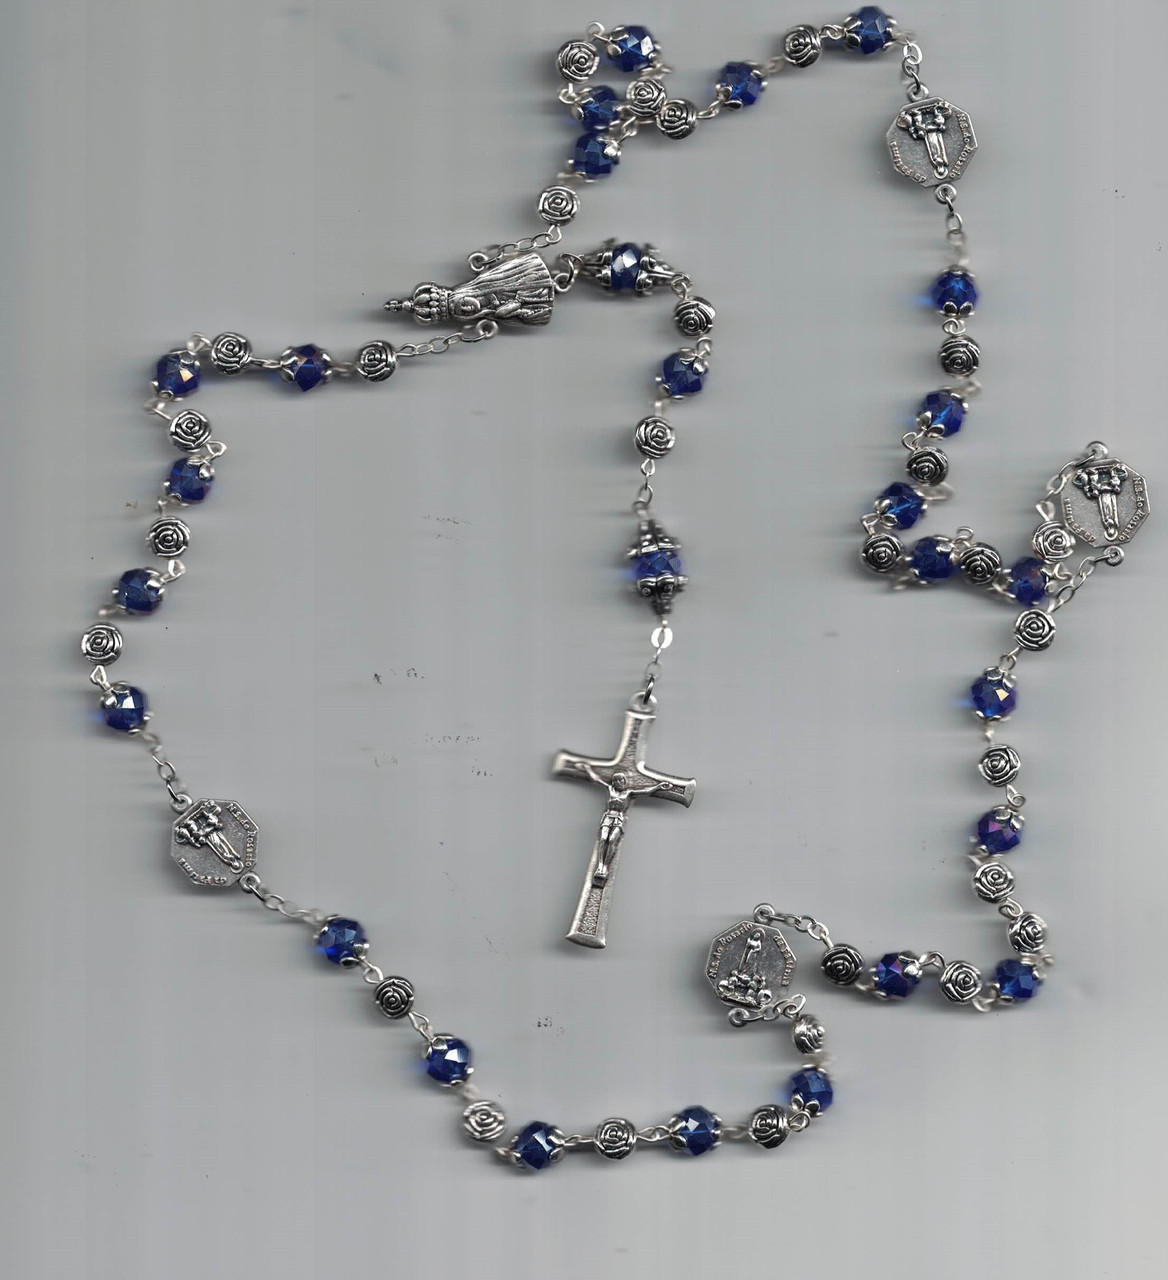 Cobalt Blue Crystal Rosary from Fatima-Hand Made in Portugal